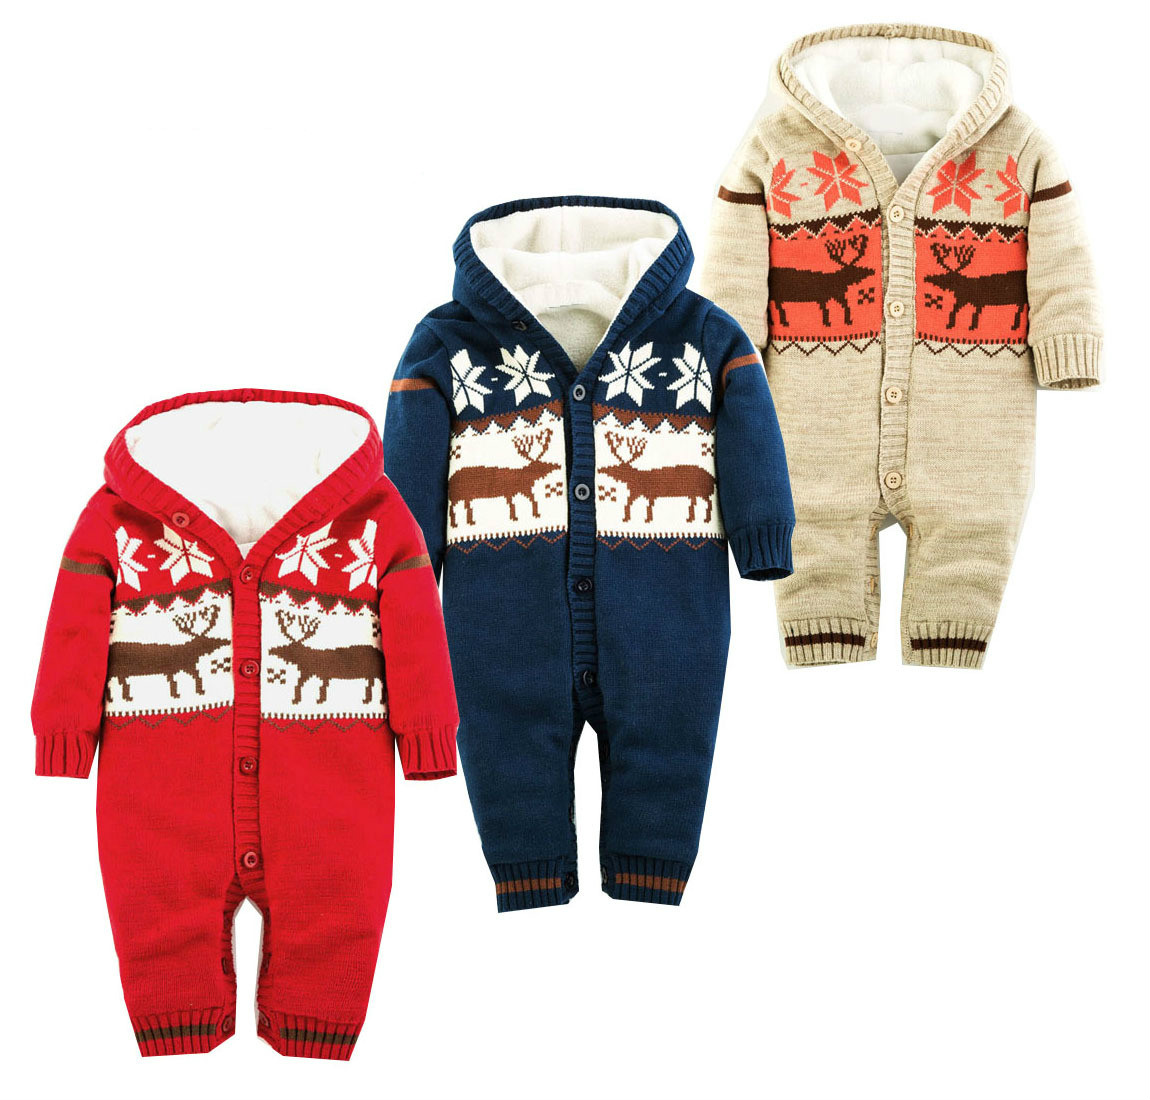 Baby 0-18M Rompers Winter Thick Climbing Clothes Newborn Boys Girls Warm Romper Knitted Sweater Christmas Deer Hooded Outwear iyeal winter baby rompers thick baby clothes newborn boys girls warm romper knitted sweater christmas deer hooded outwear